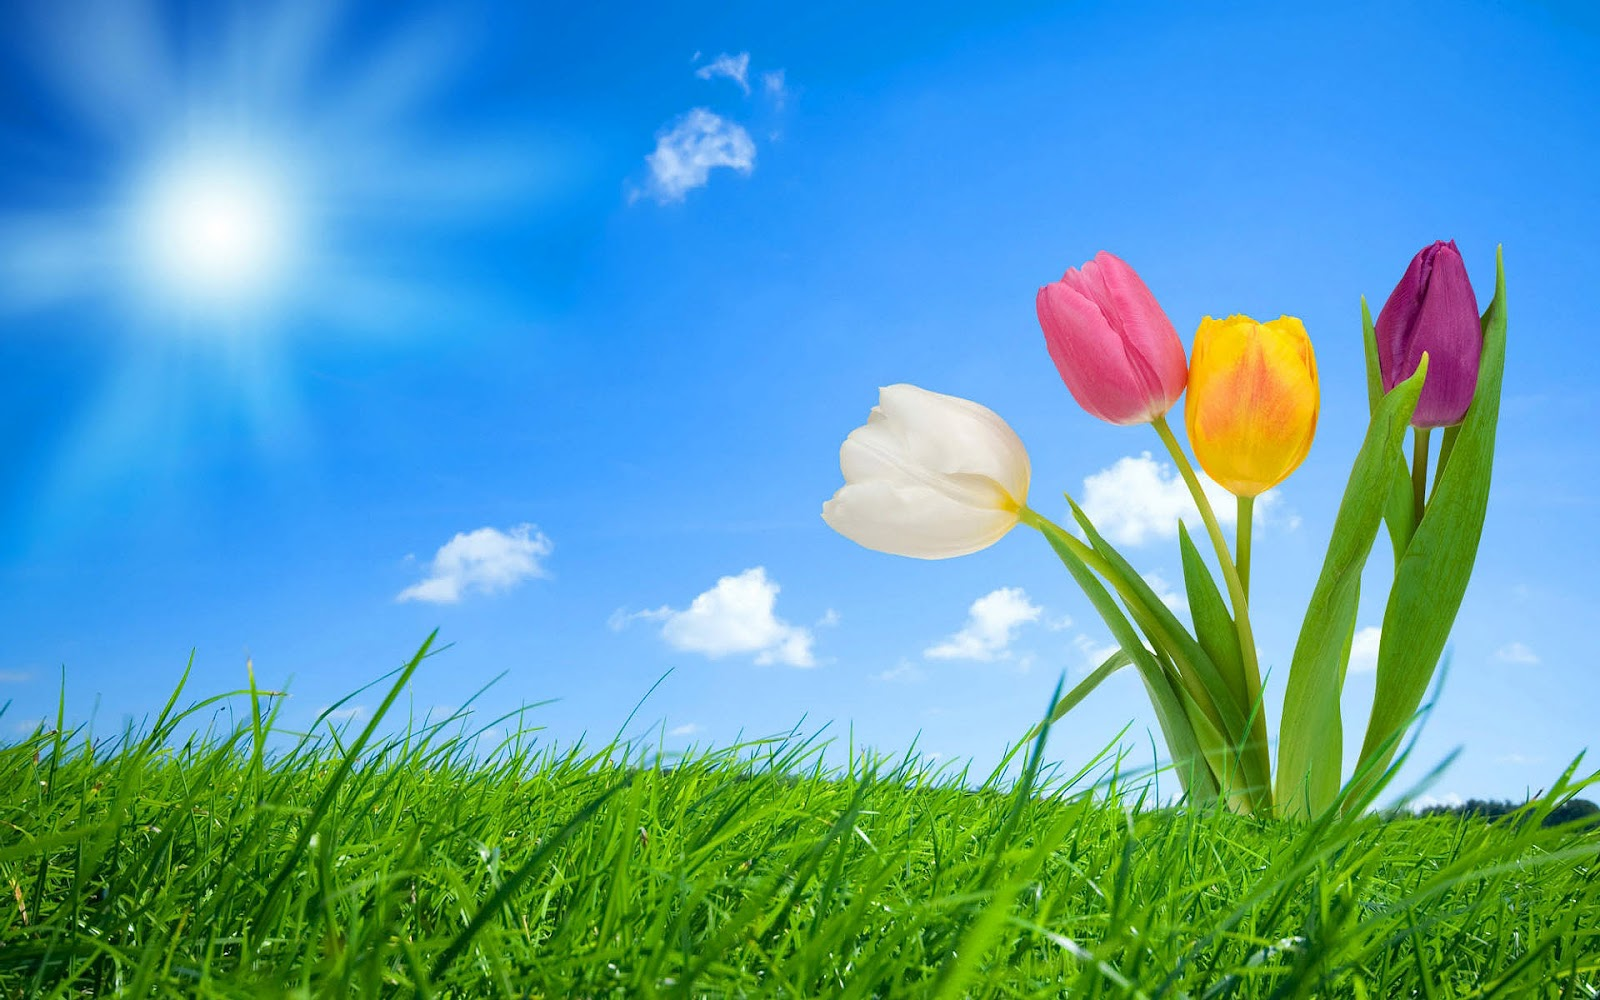 Spring Desktop Backgrounds wallpaper Spring Desktop Backgrounds hd 1600x1000